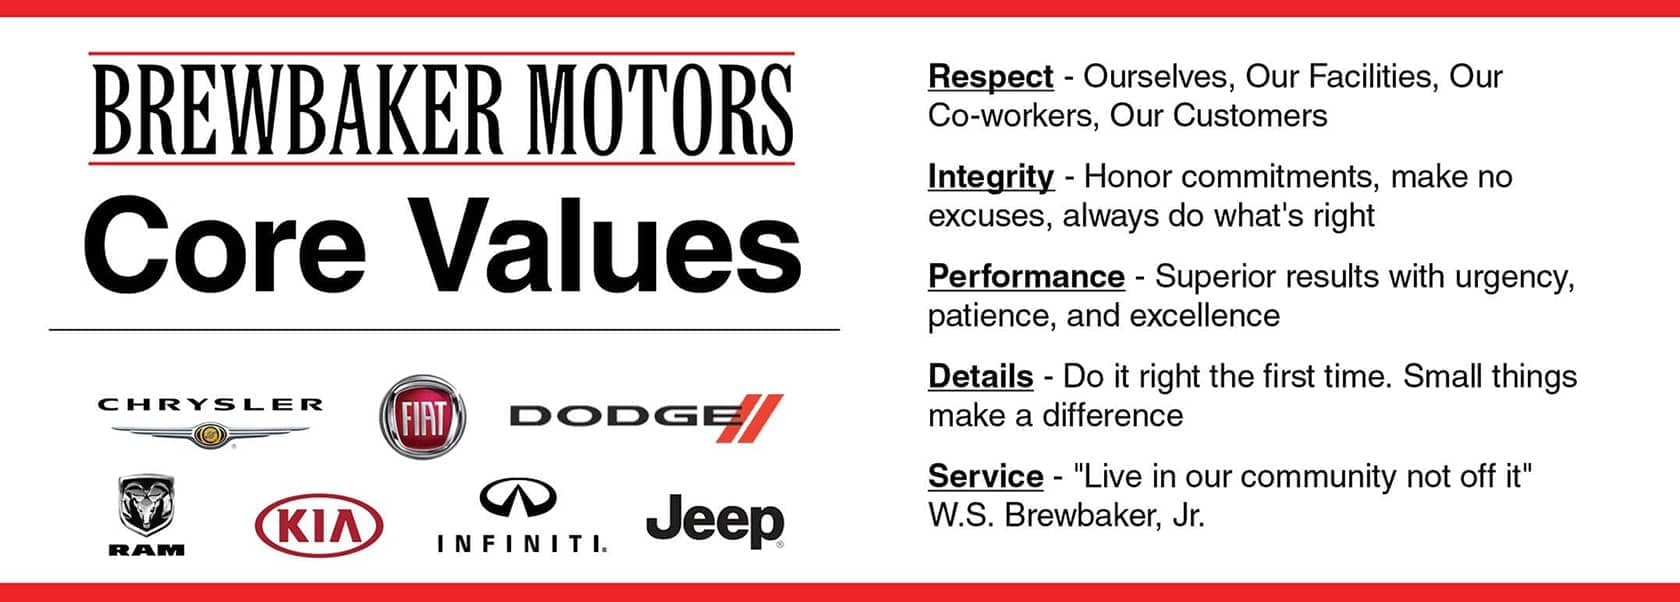 Brewbaker Motors Core Values